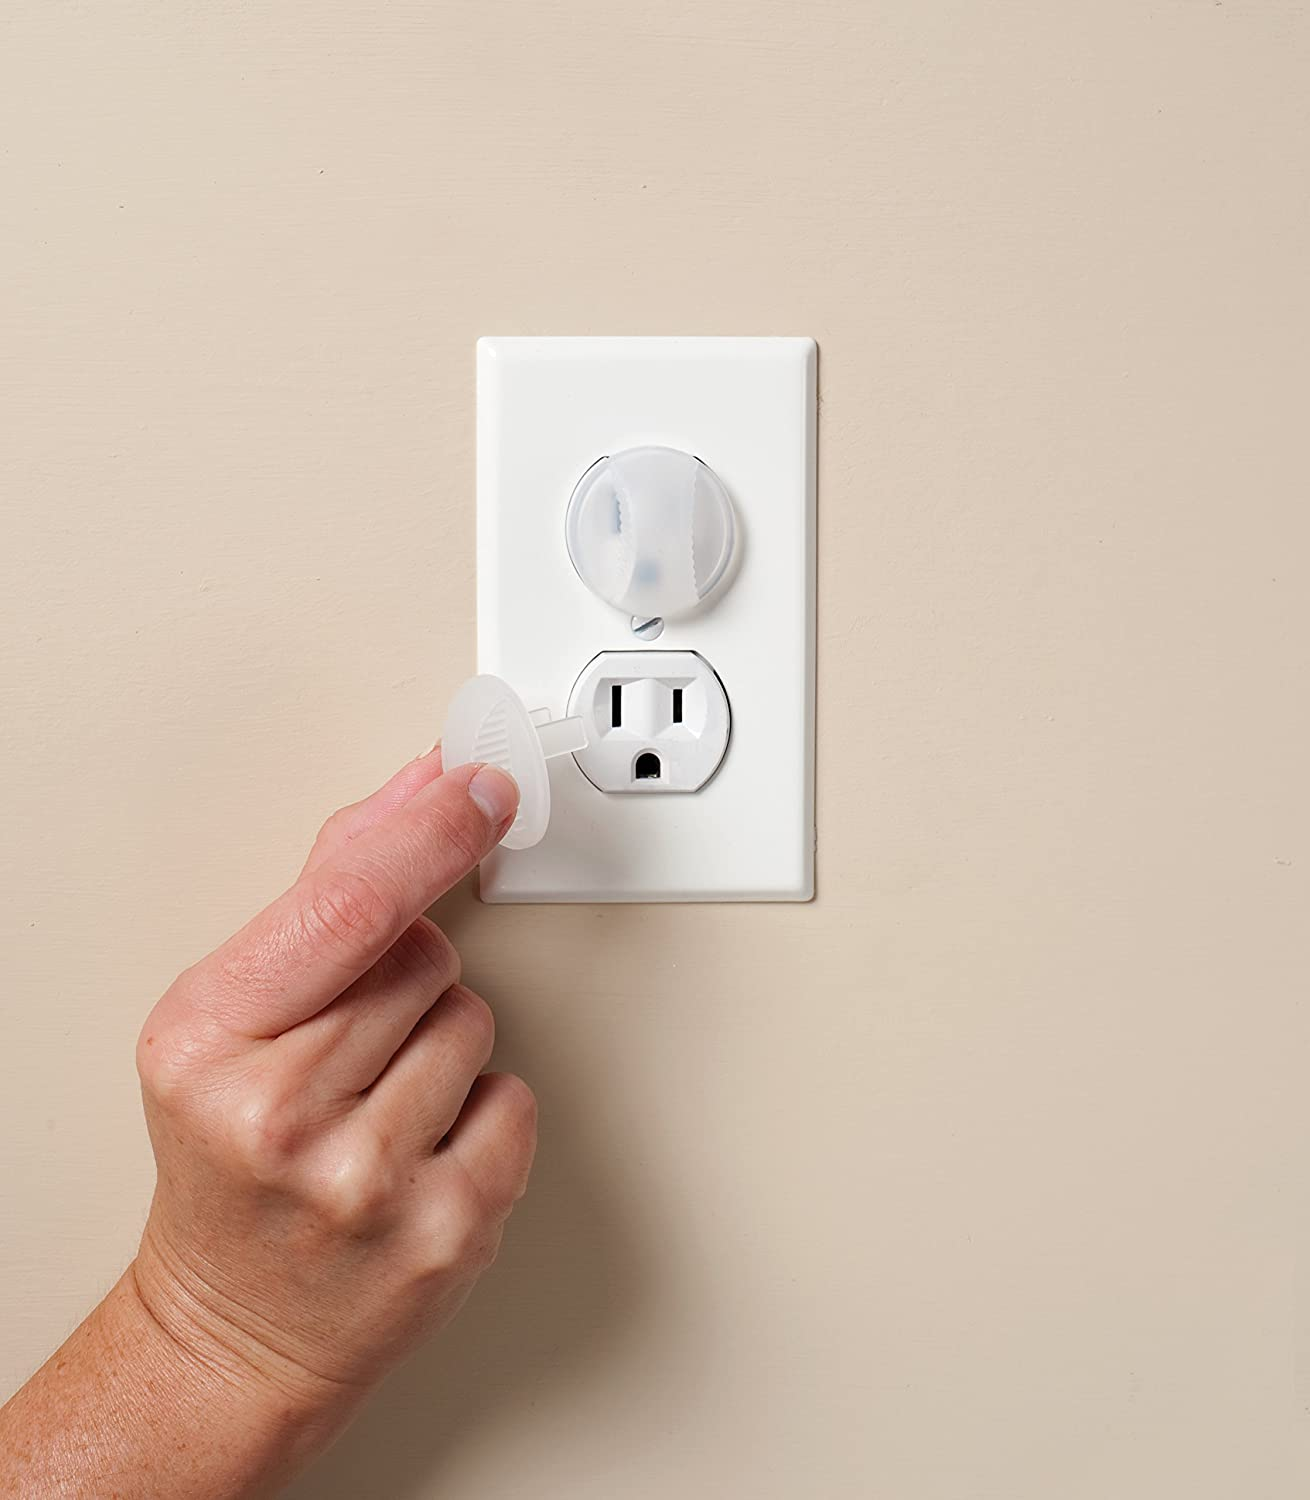 KidCo 36 Count Electrical Outlet Cap